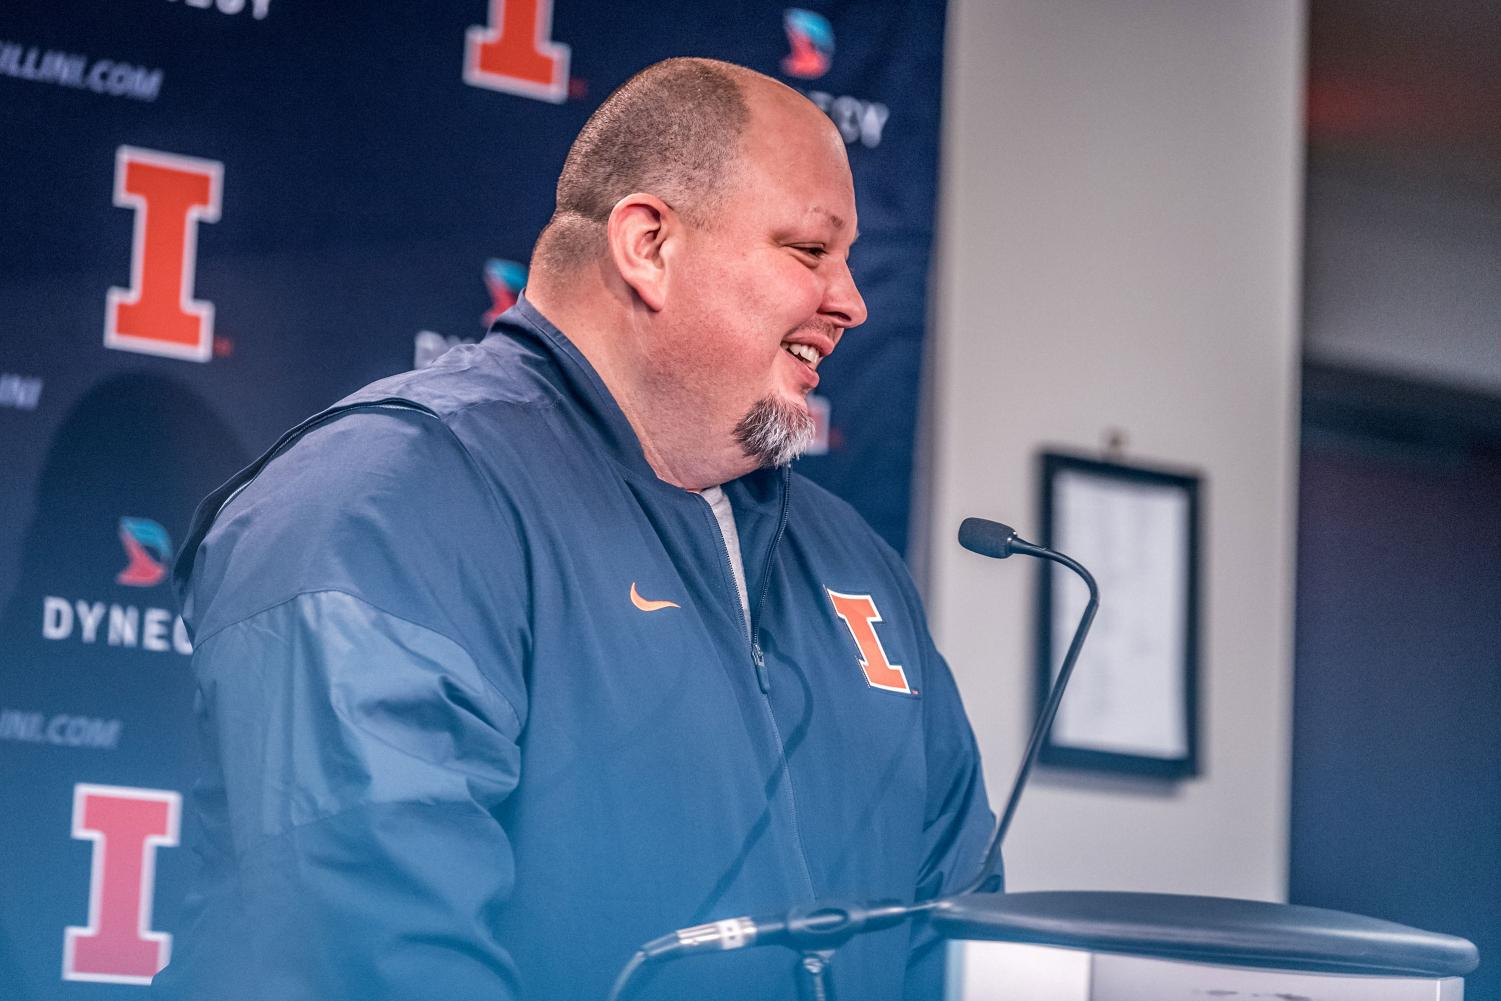 New Illinois offensive coordinator Rod Smith answers questions from the media at his introductory press conference on Jan. 26. Smith's Arizona team was ranked fifth in points per game (41.3) and 12th in yards per game (489.5).